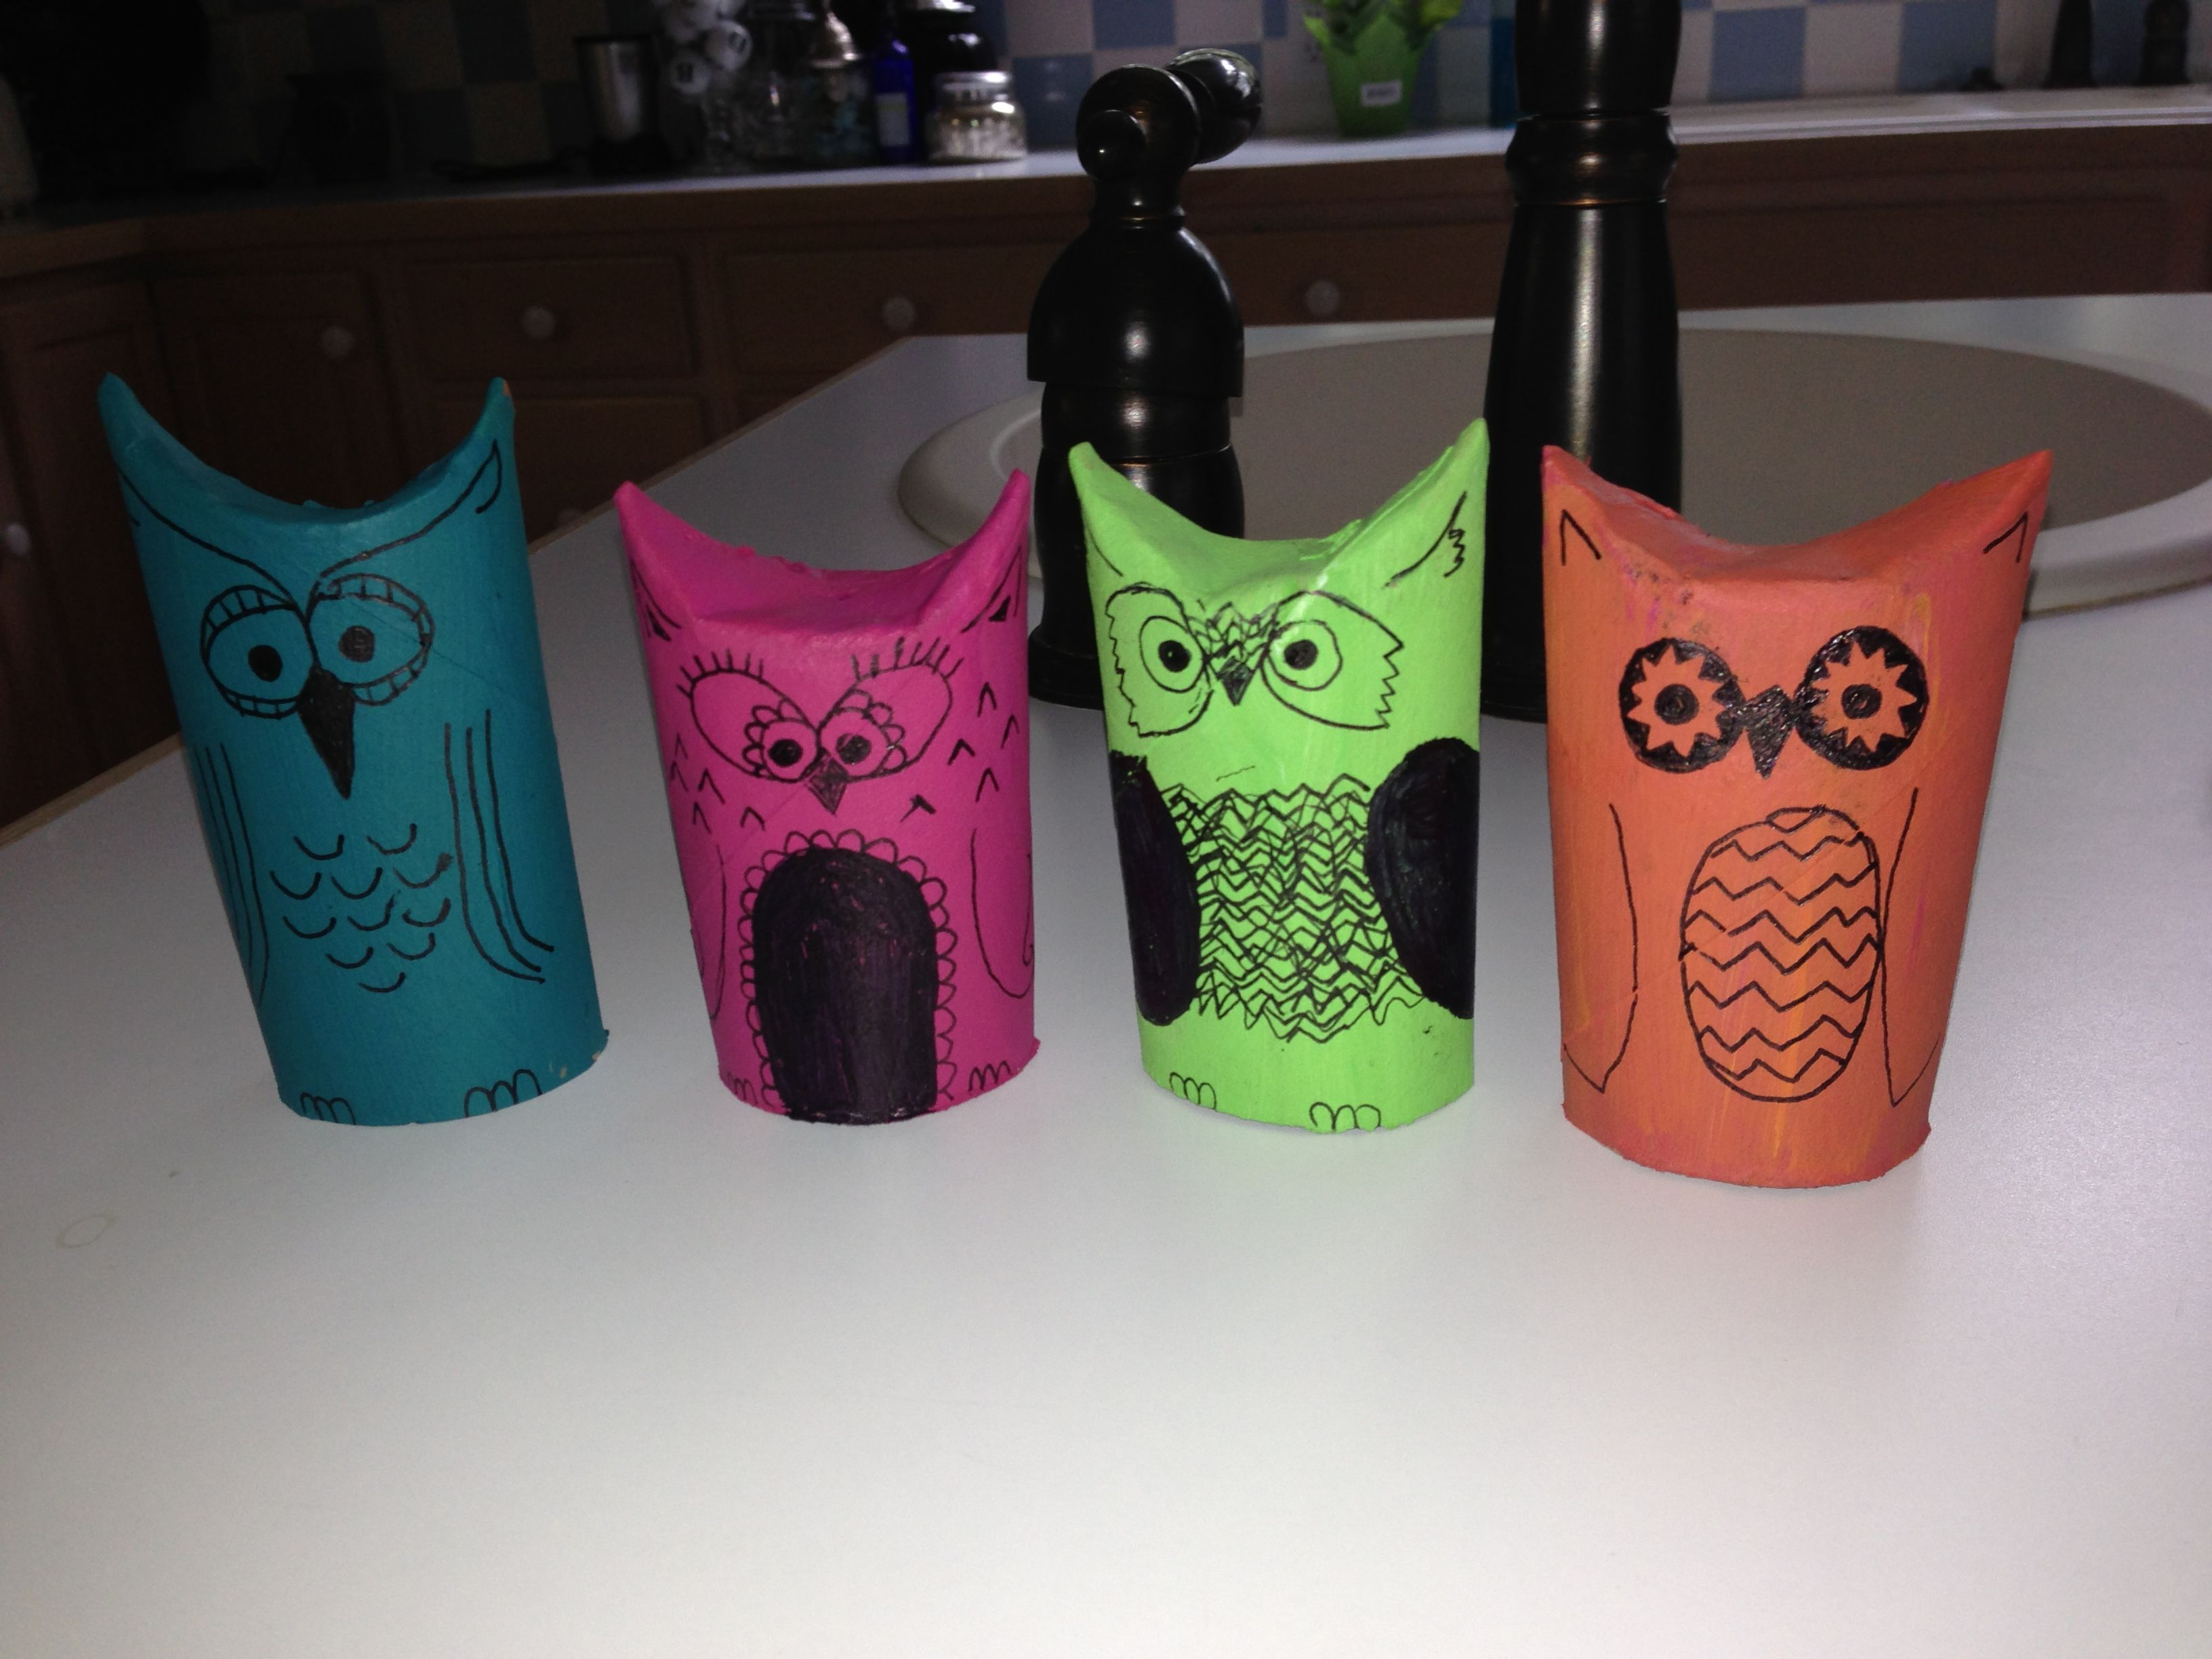 Toilet paper tube owls crafts pinterest for Toilet paper tube owls